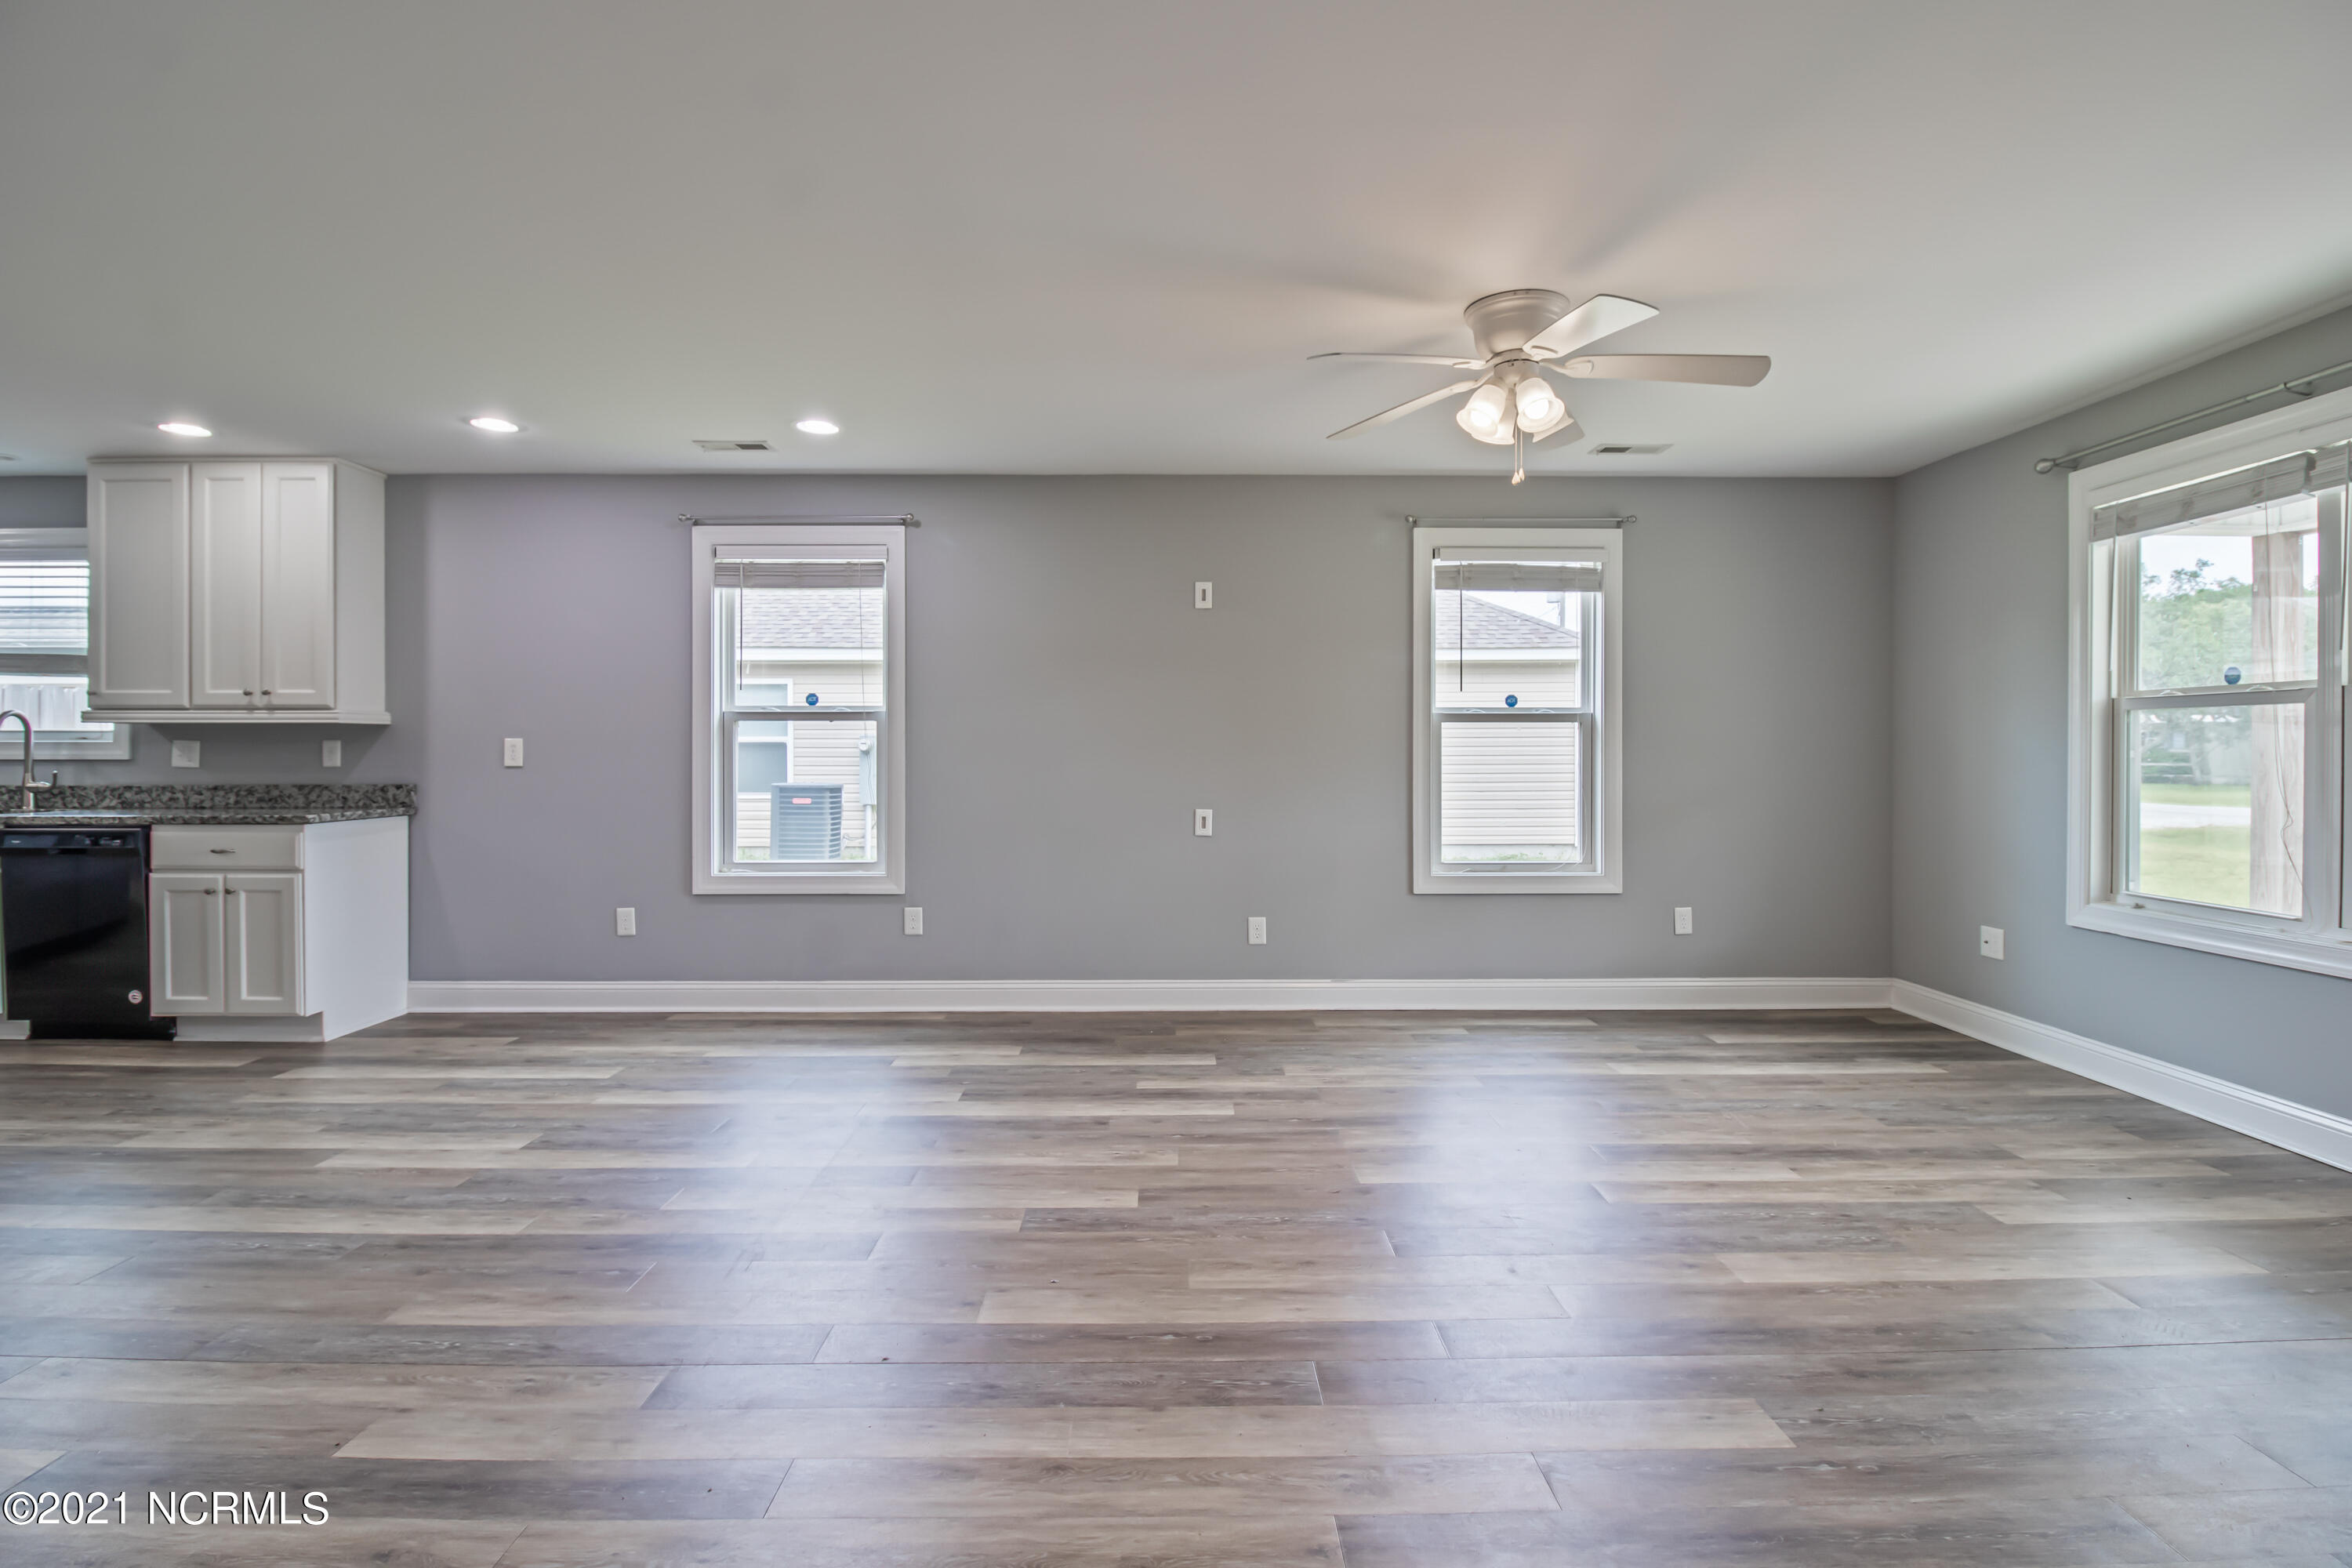 4552 Sea Pines Drive, Southport, North Carolina 28461, 3 Bedrooms Bedrooms, 5 Rooms Rooms,2 BathroomsBathrooms,Single family residence,For sale,Sea Pines,100284590